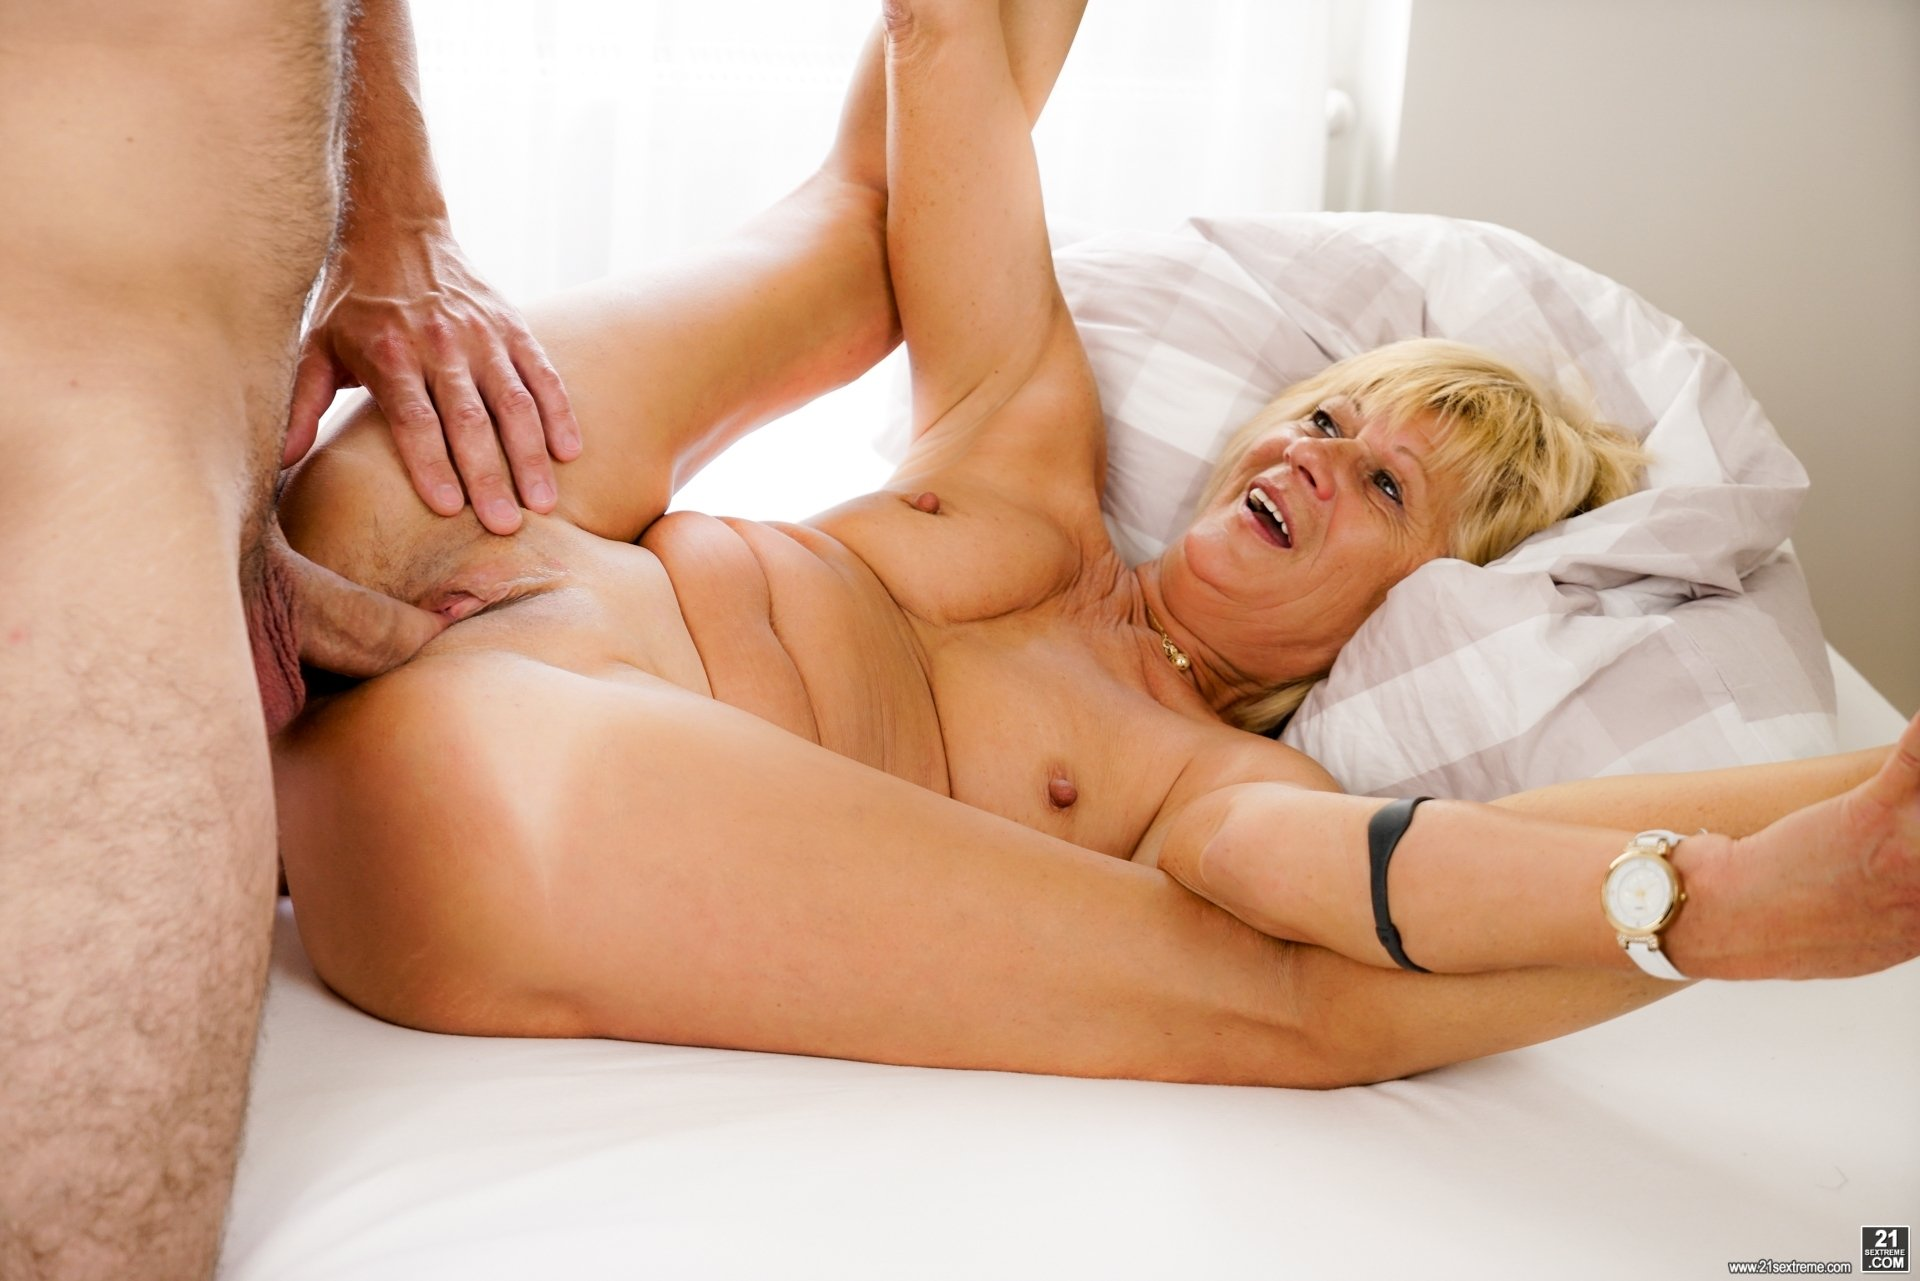 Wife shows pussy to sons friends Same sex parents statistics uk